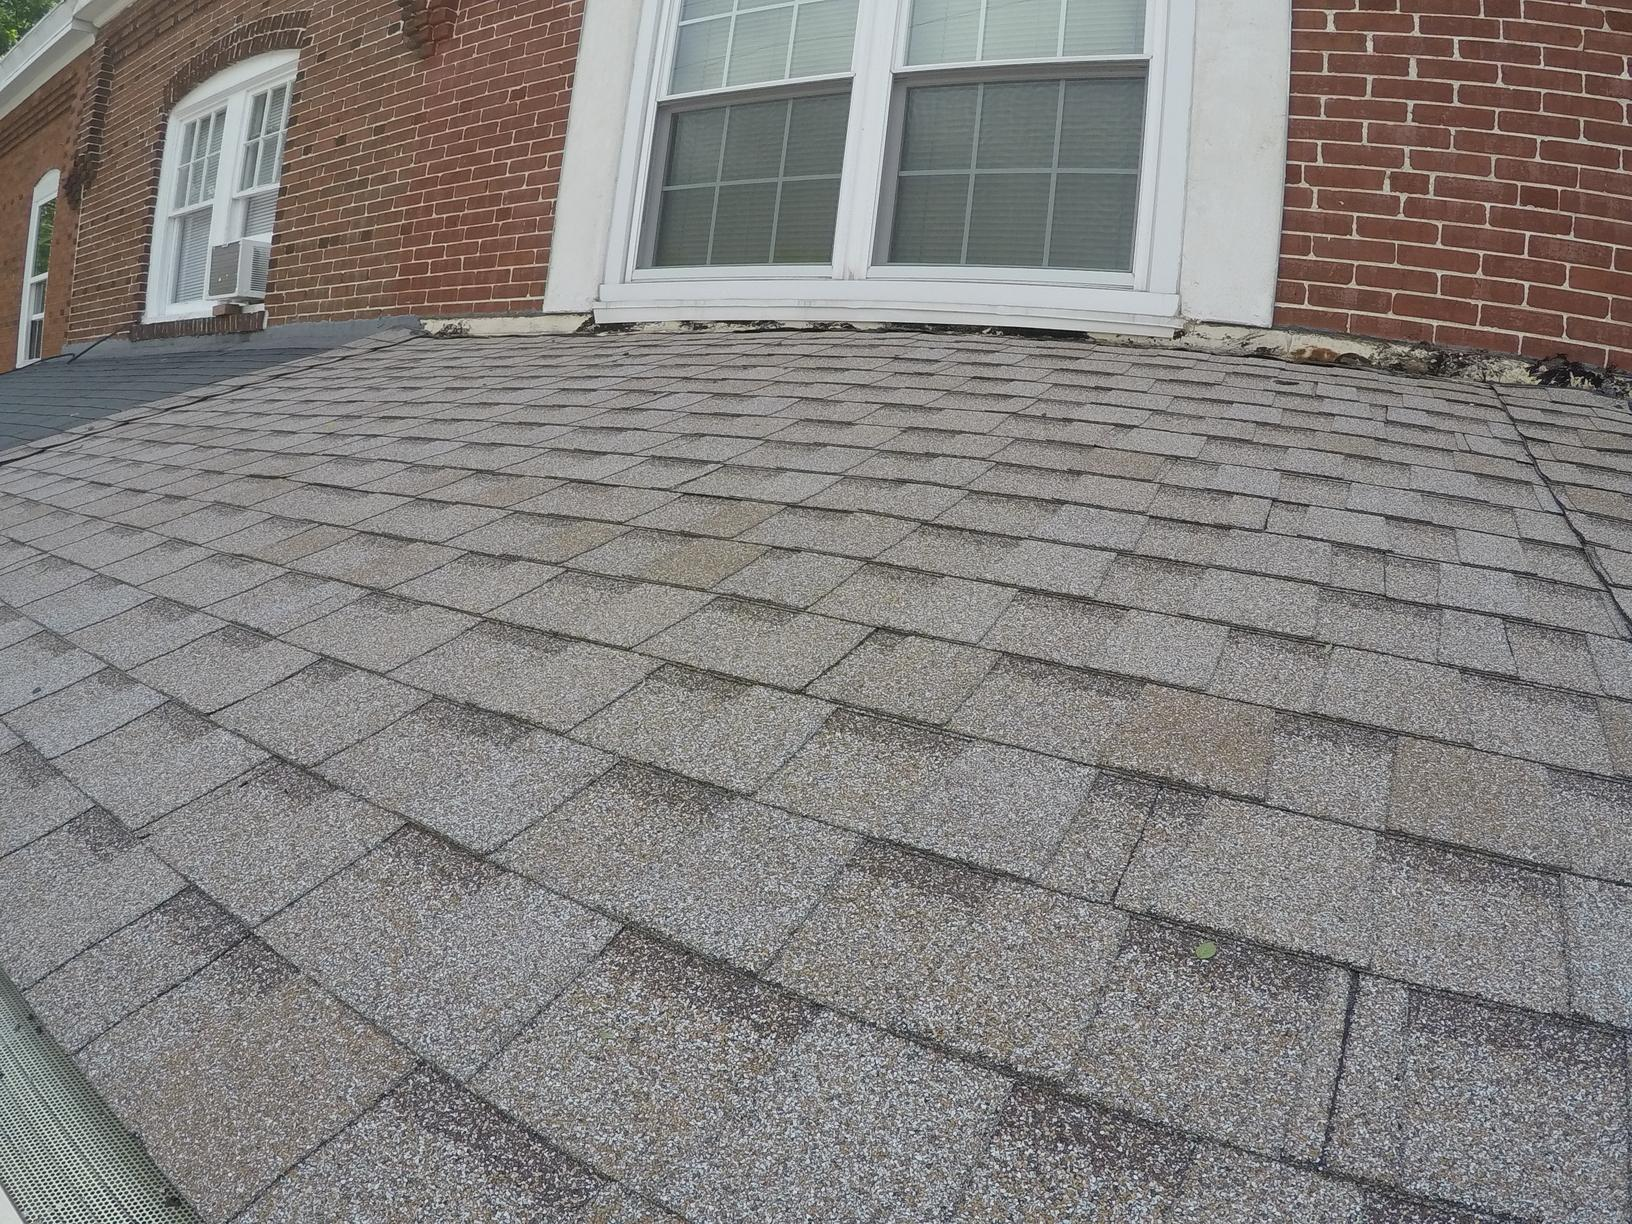 New Roof Replacement In Norristown, PA - After Photo